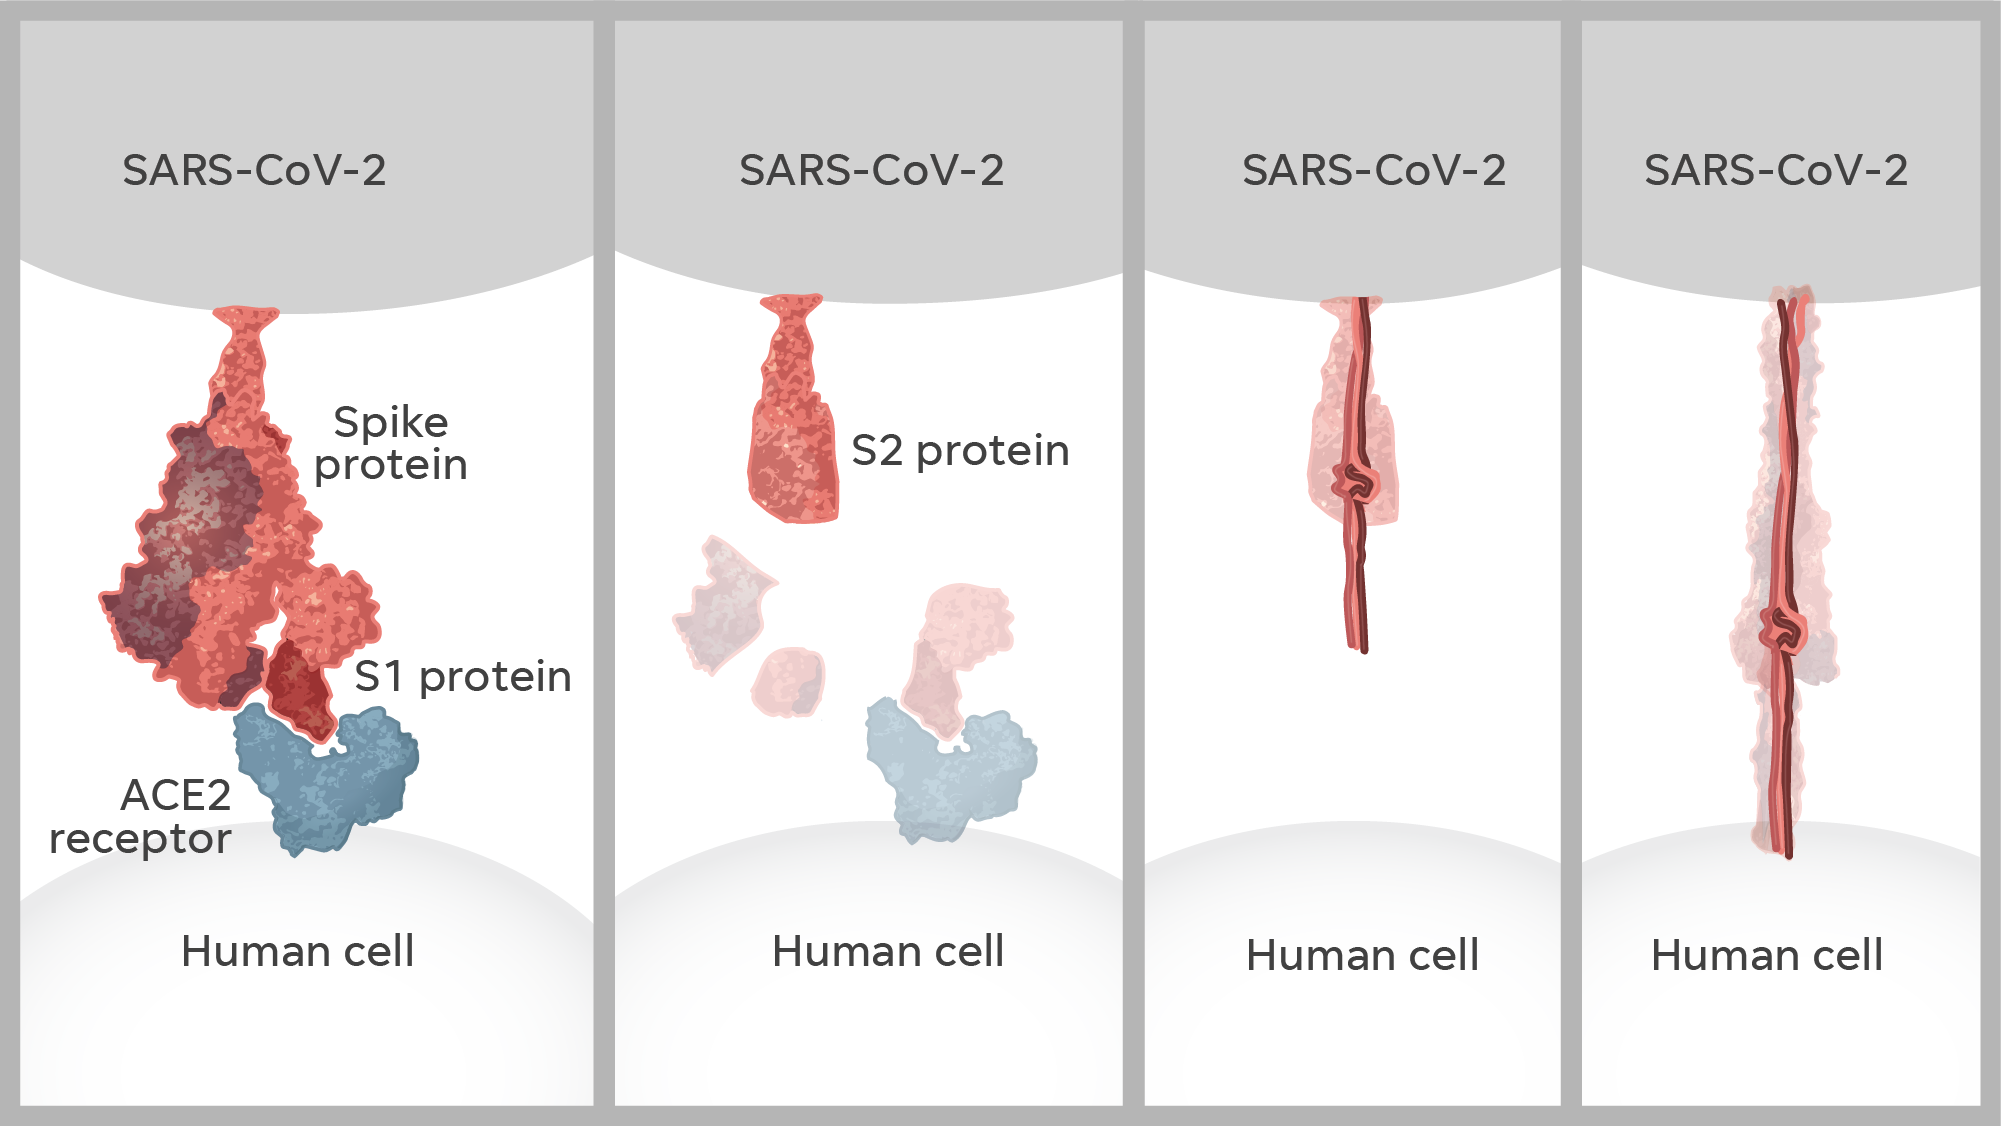 Once it locates a human cell, part of the spike protein – known as S1 – latches onto a receptor on the surface of the cell. The S1 protein falls off, leaving an attached segment – the S2 protein – which inserts itself into the cell.